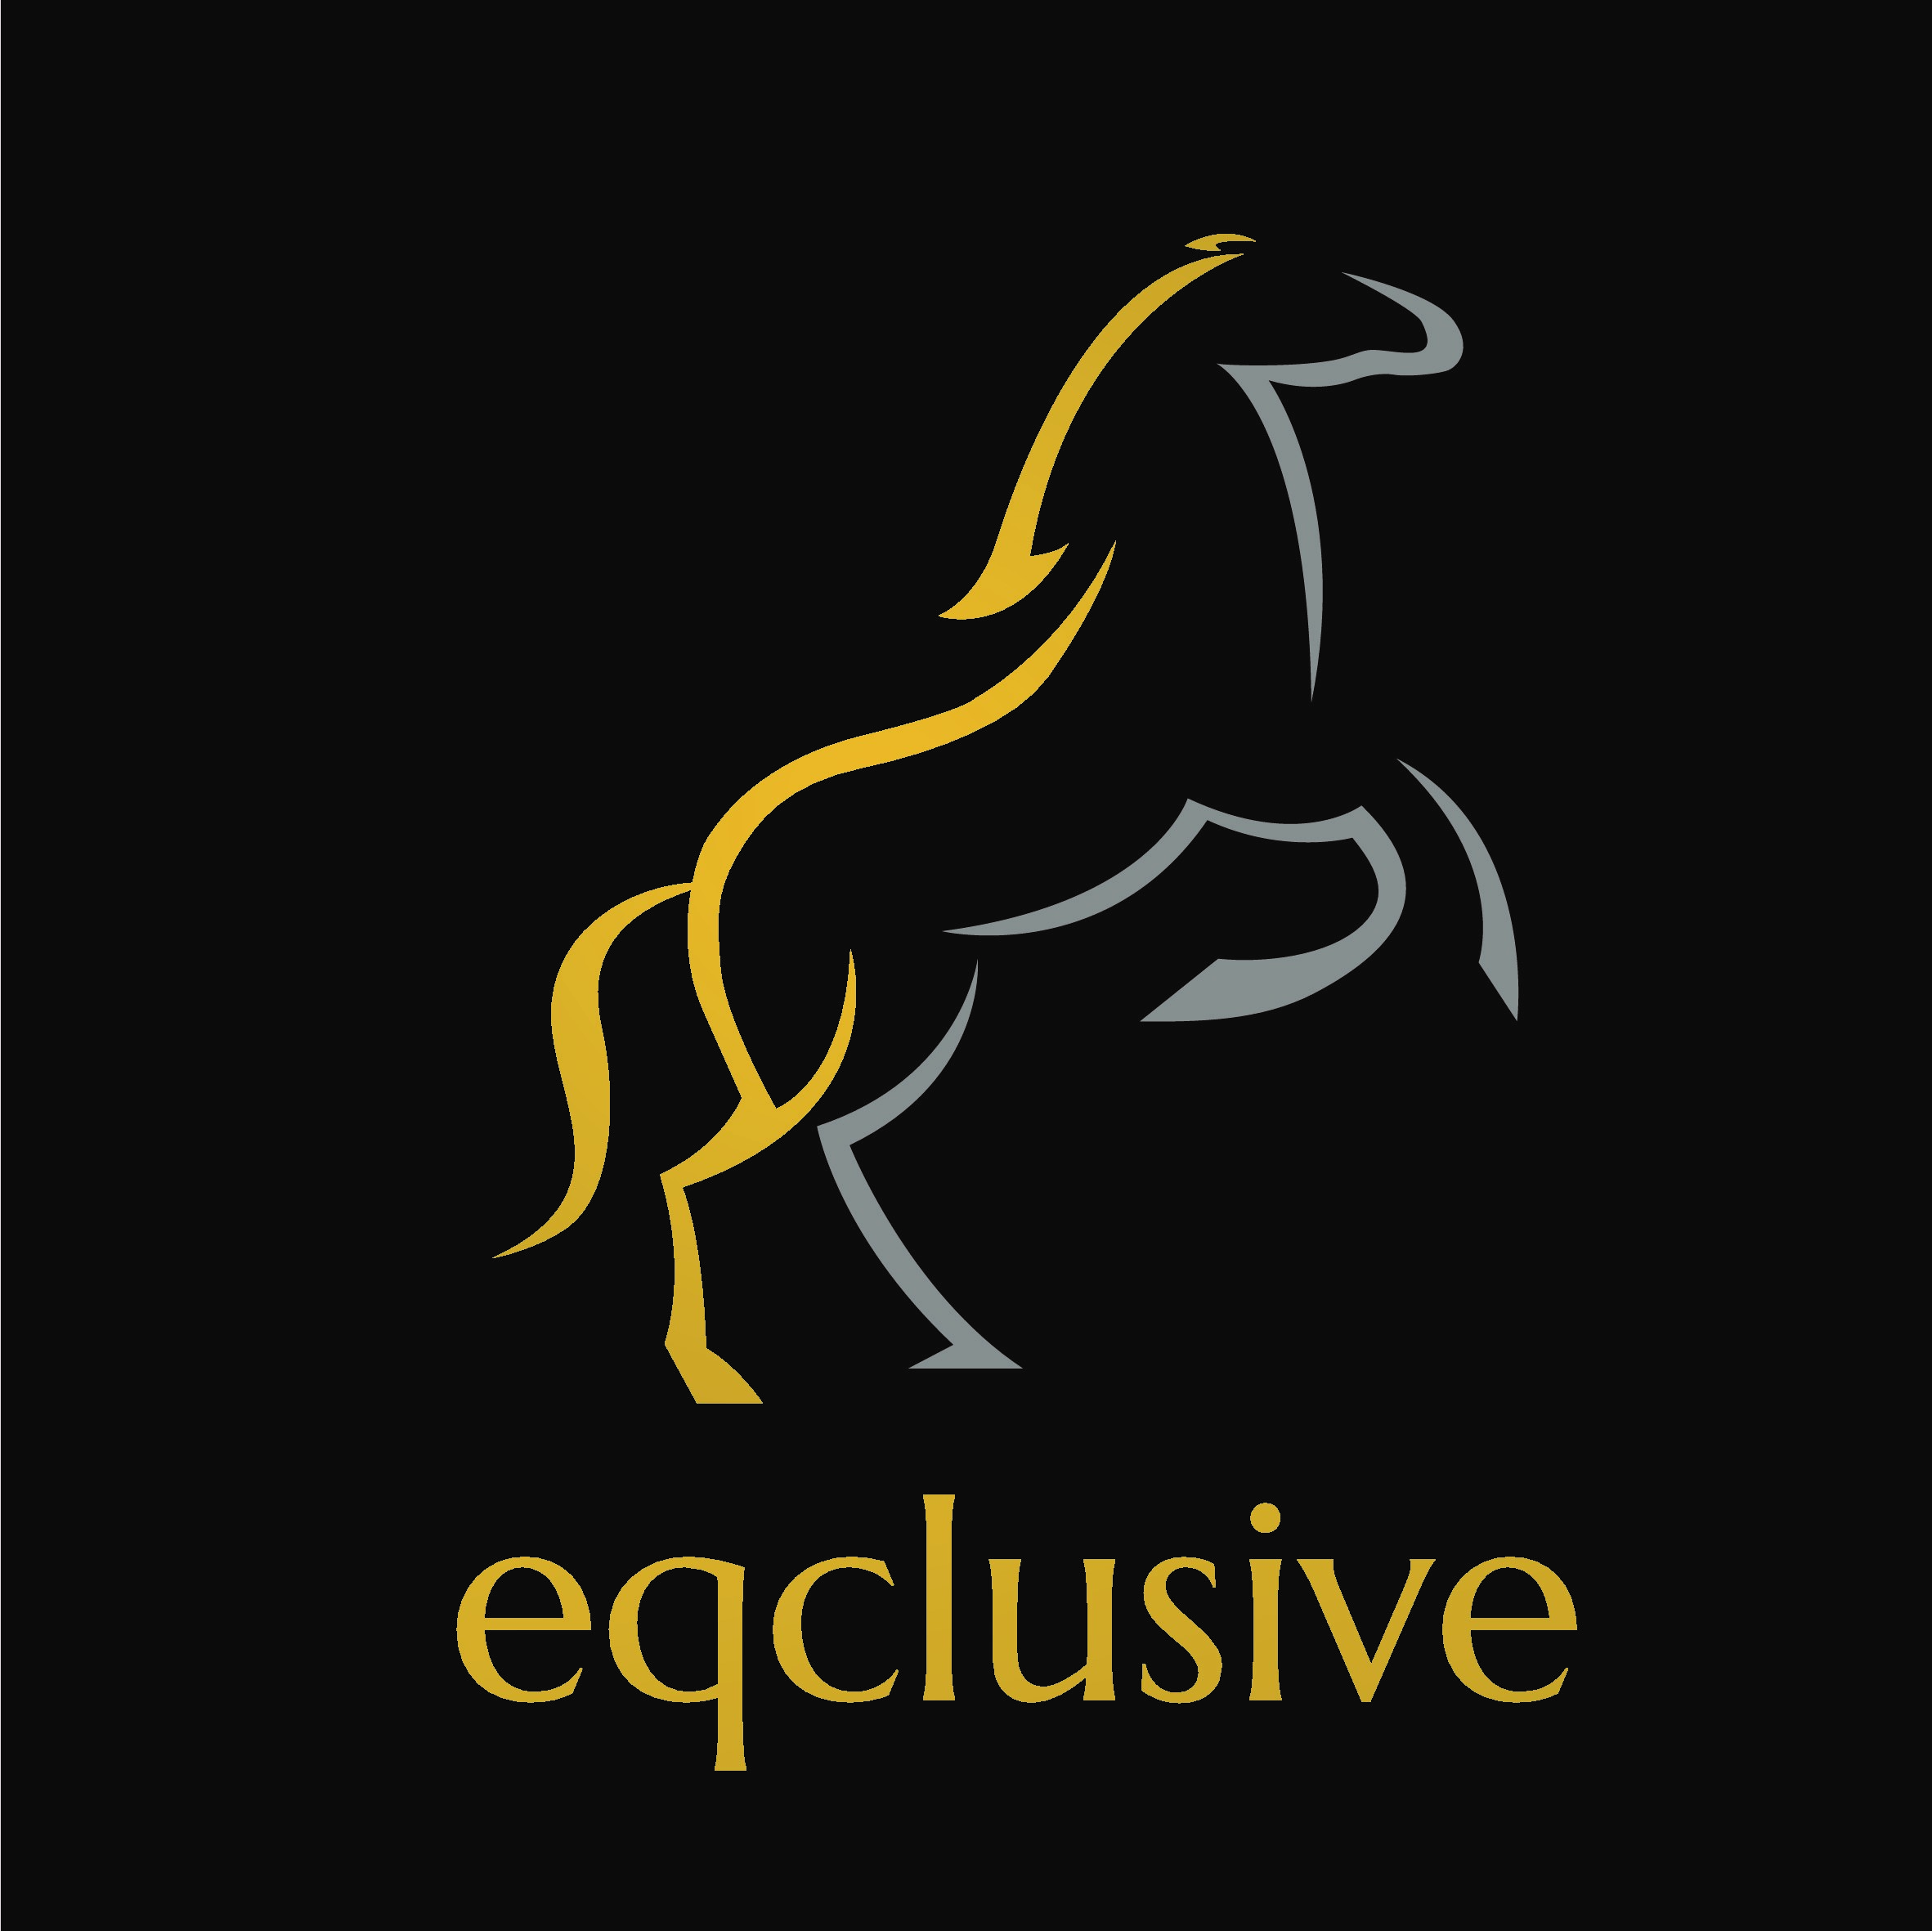 Equestrian Employers Association Sponsor Eqclusive